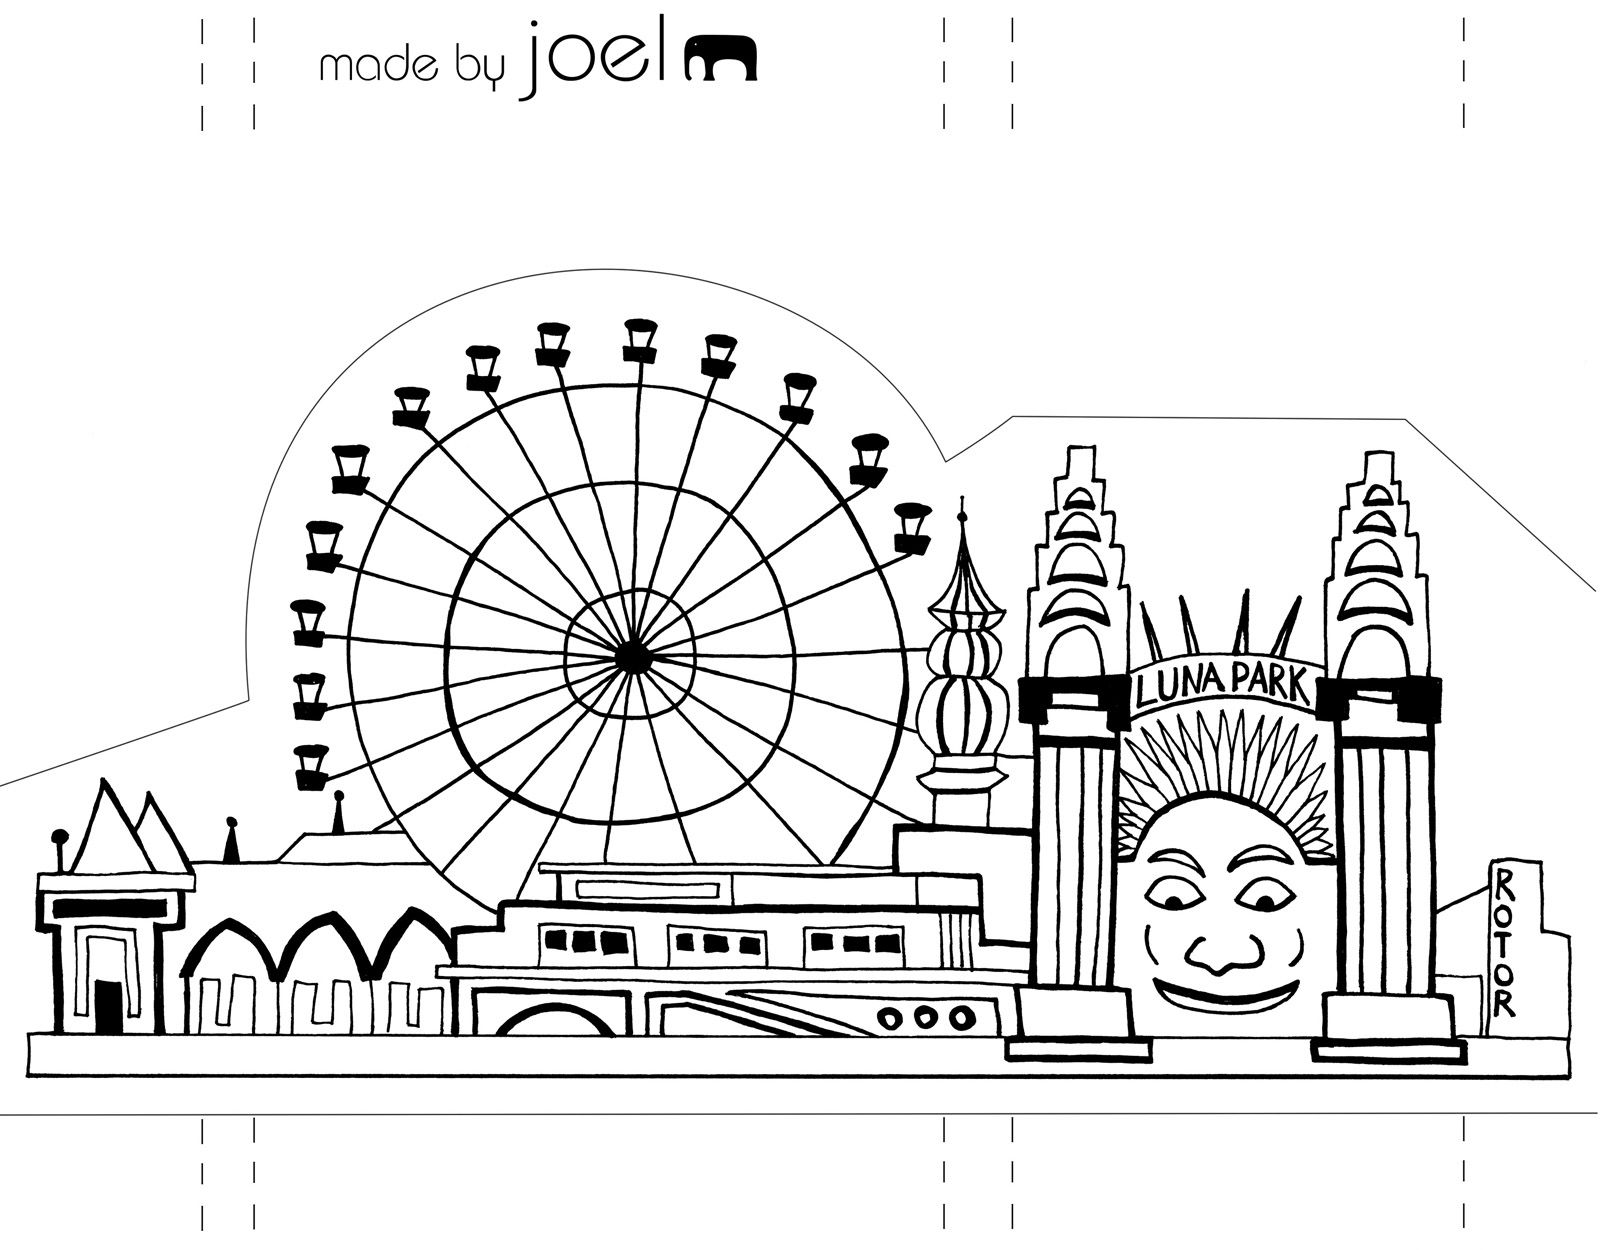 Template Made by Joel Paper City Sydney Luna Park, Paper City ...